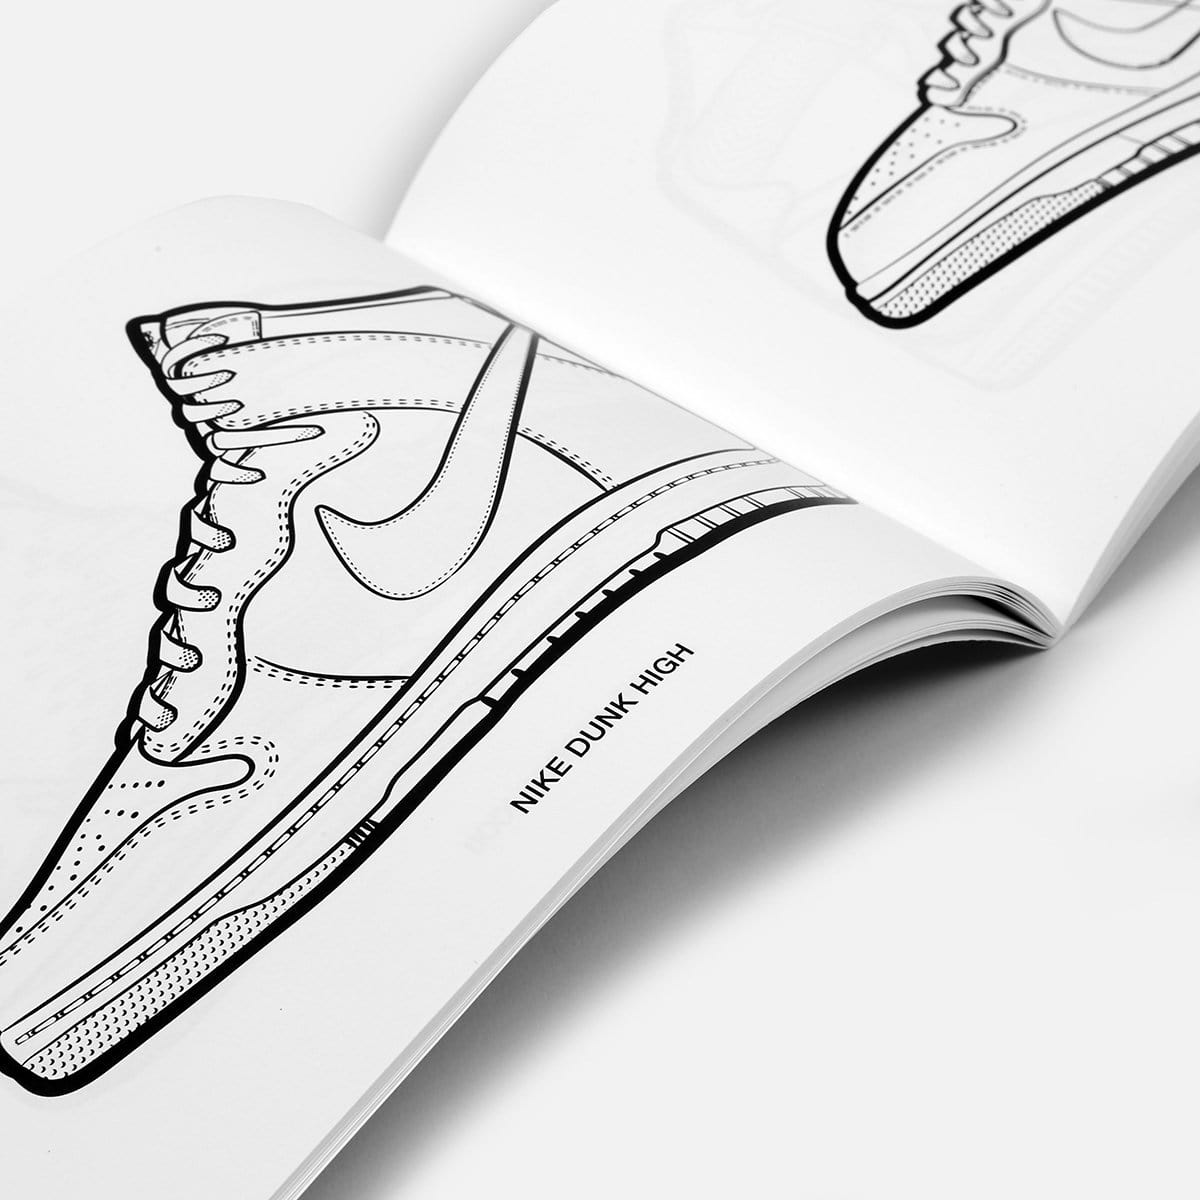 COLORWAYS A SNEAKER COLORING BOOK